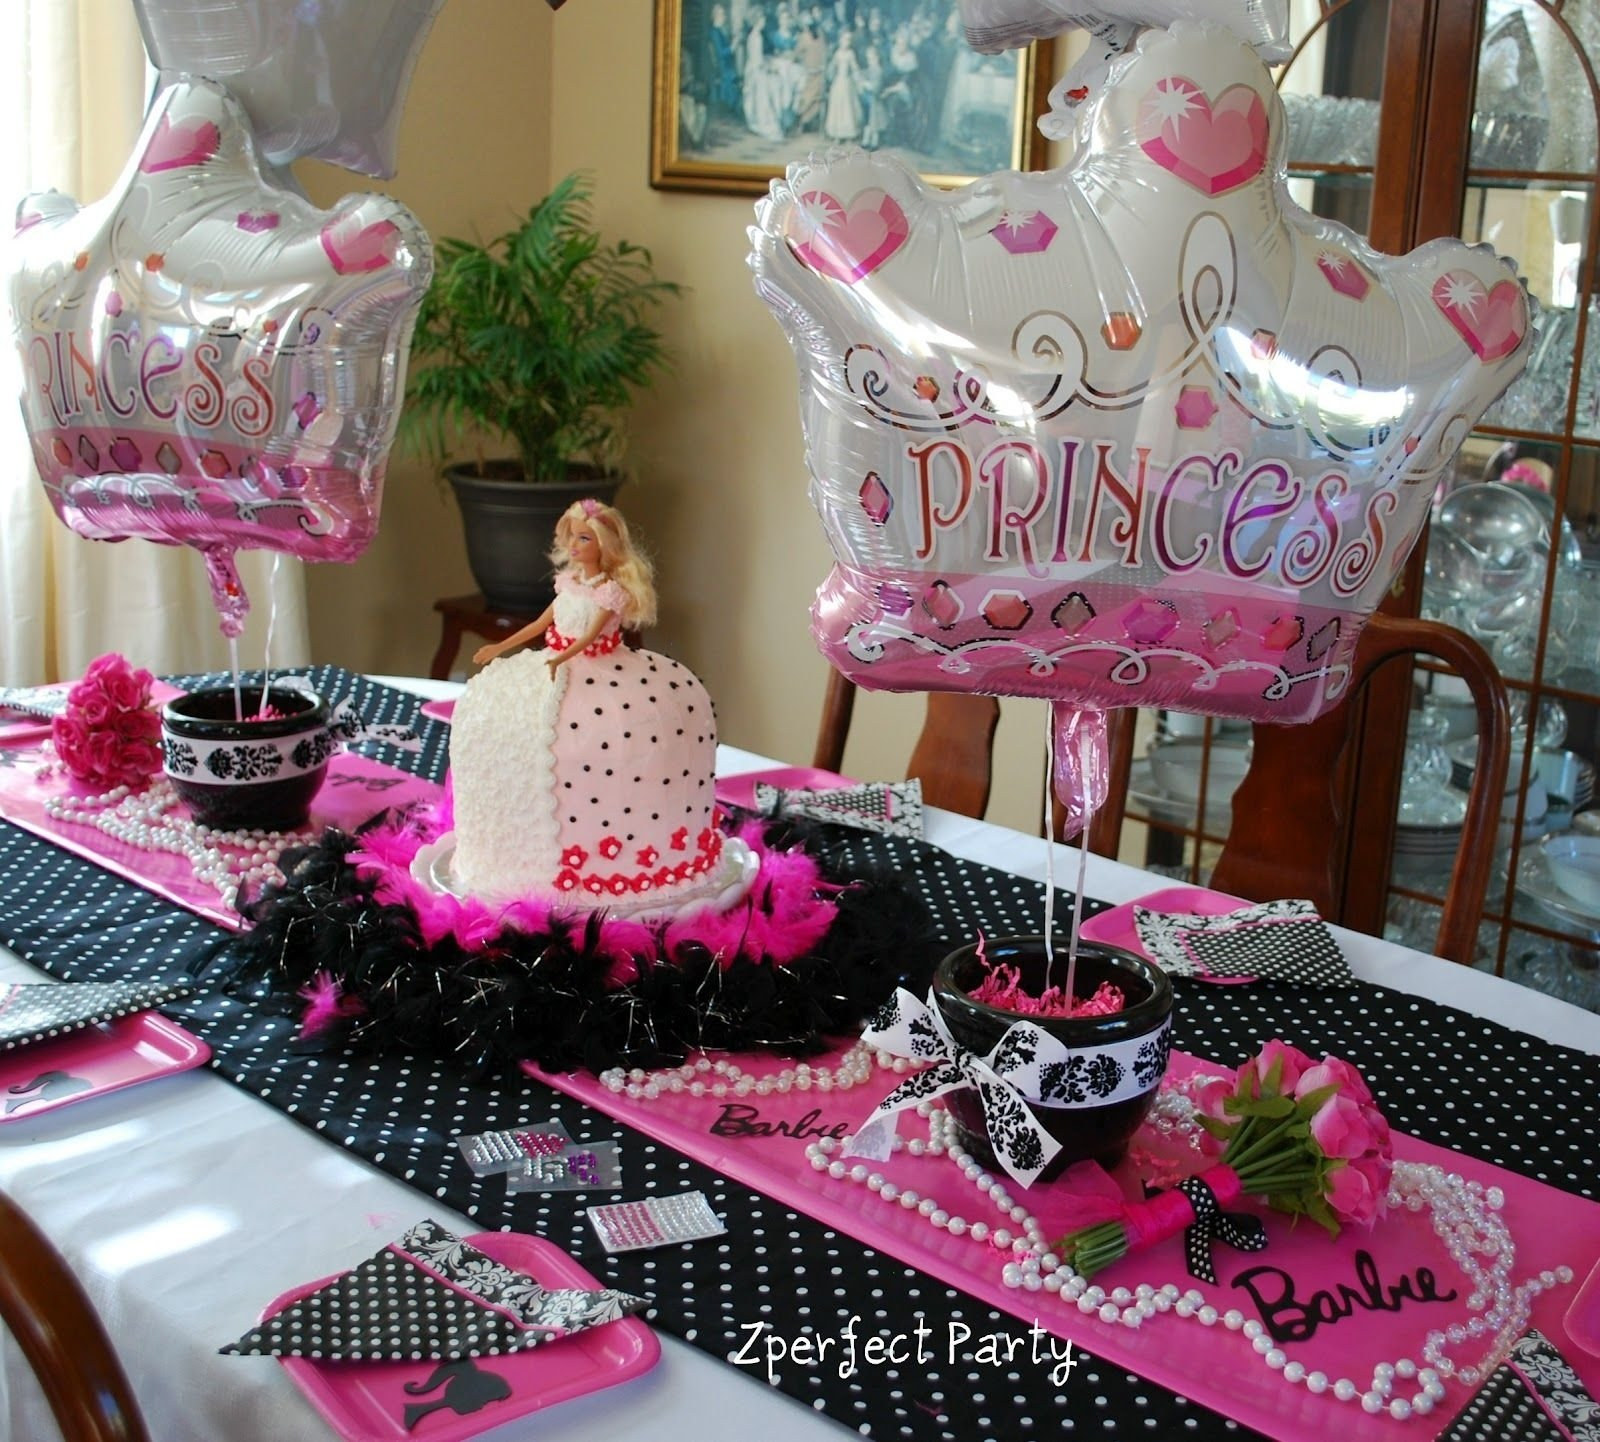 10 Gorgeous 5 Year Old Girl Birthday Party Ideas image detail for rock star party place barbie dress up games 1 2020